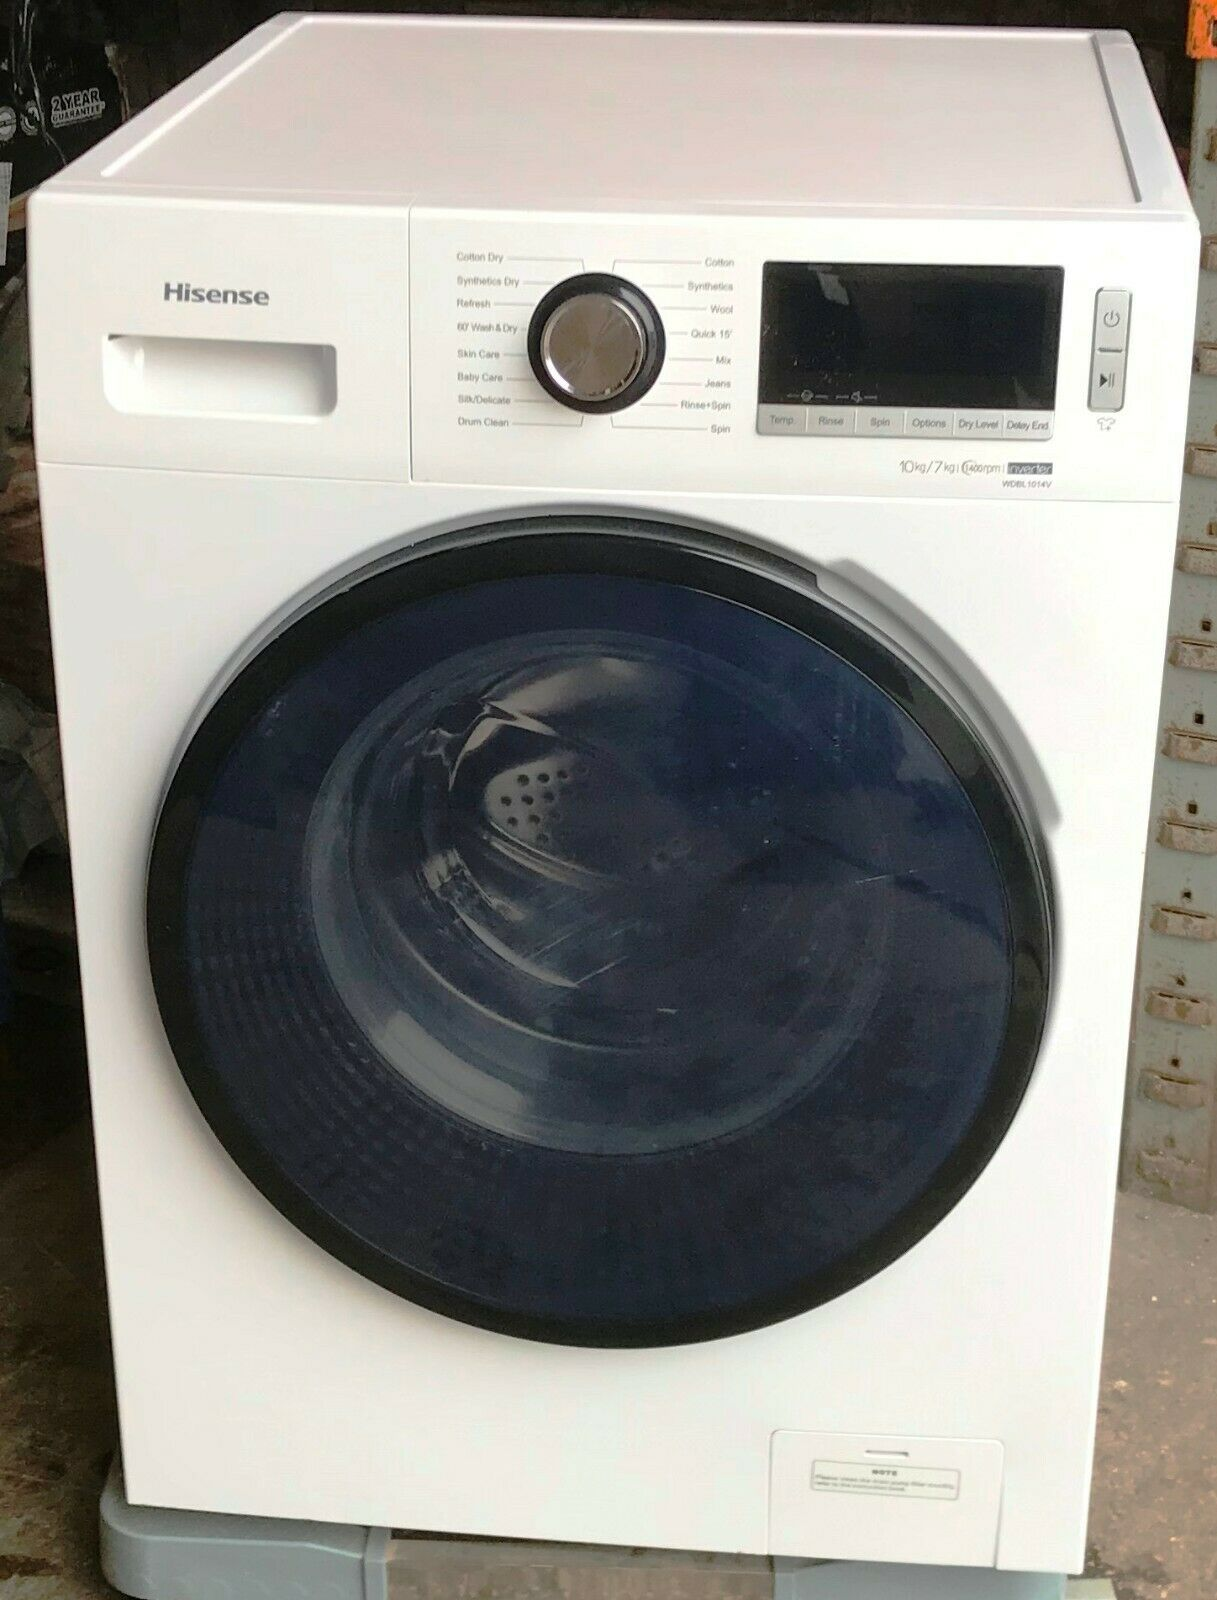 "Hisense ""WDBL1014V"" 10kg/7kg Washer Dryer in White  NEW  RRP £429"